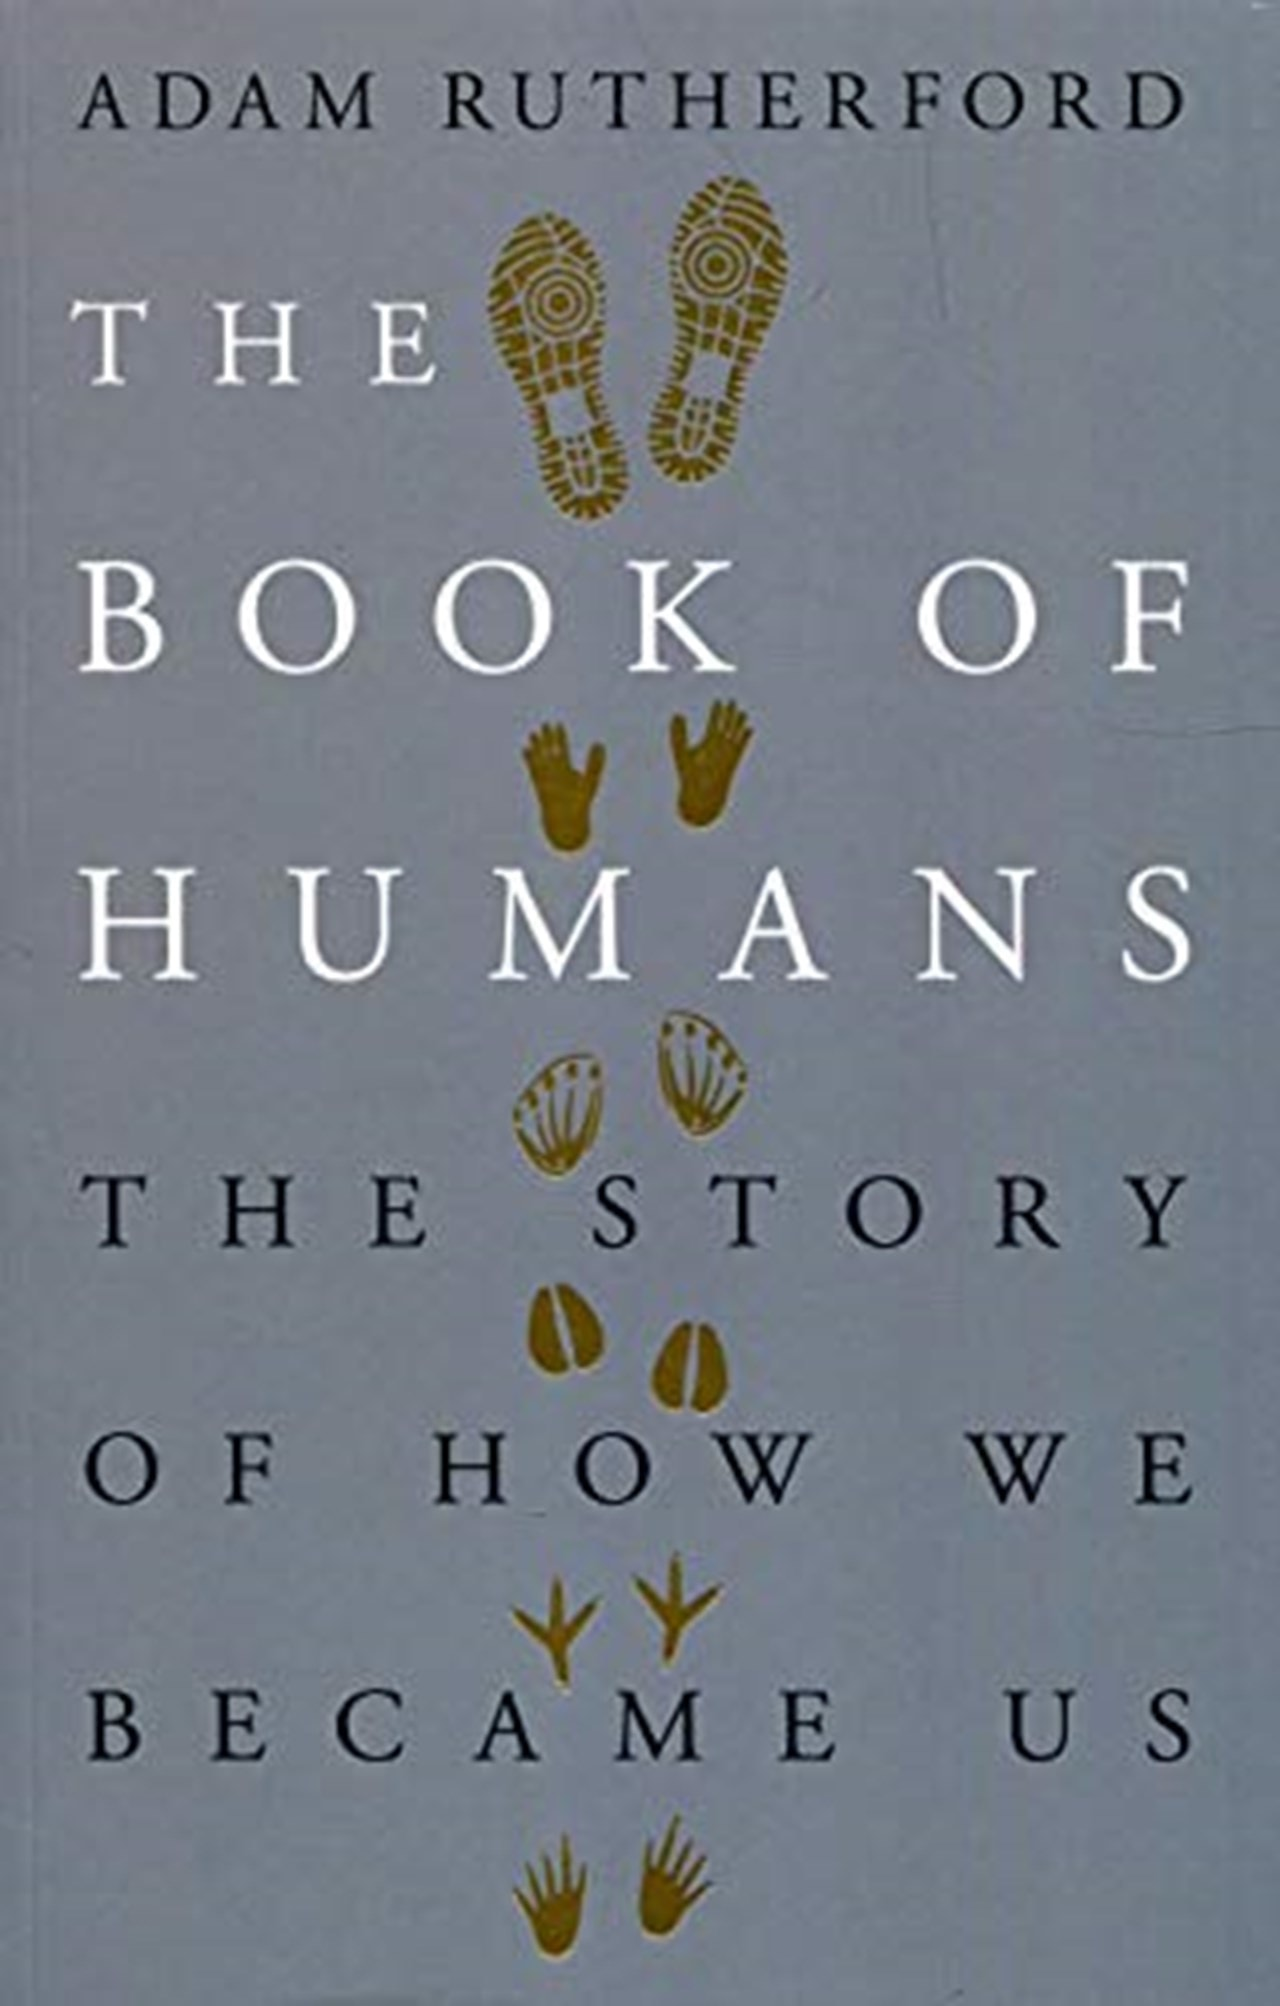 The Book of Humans: A Brief History of Culture, Sex, War and the Evolution of Us - 1